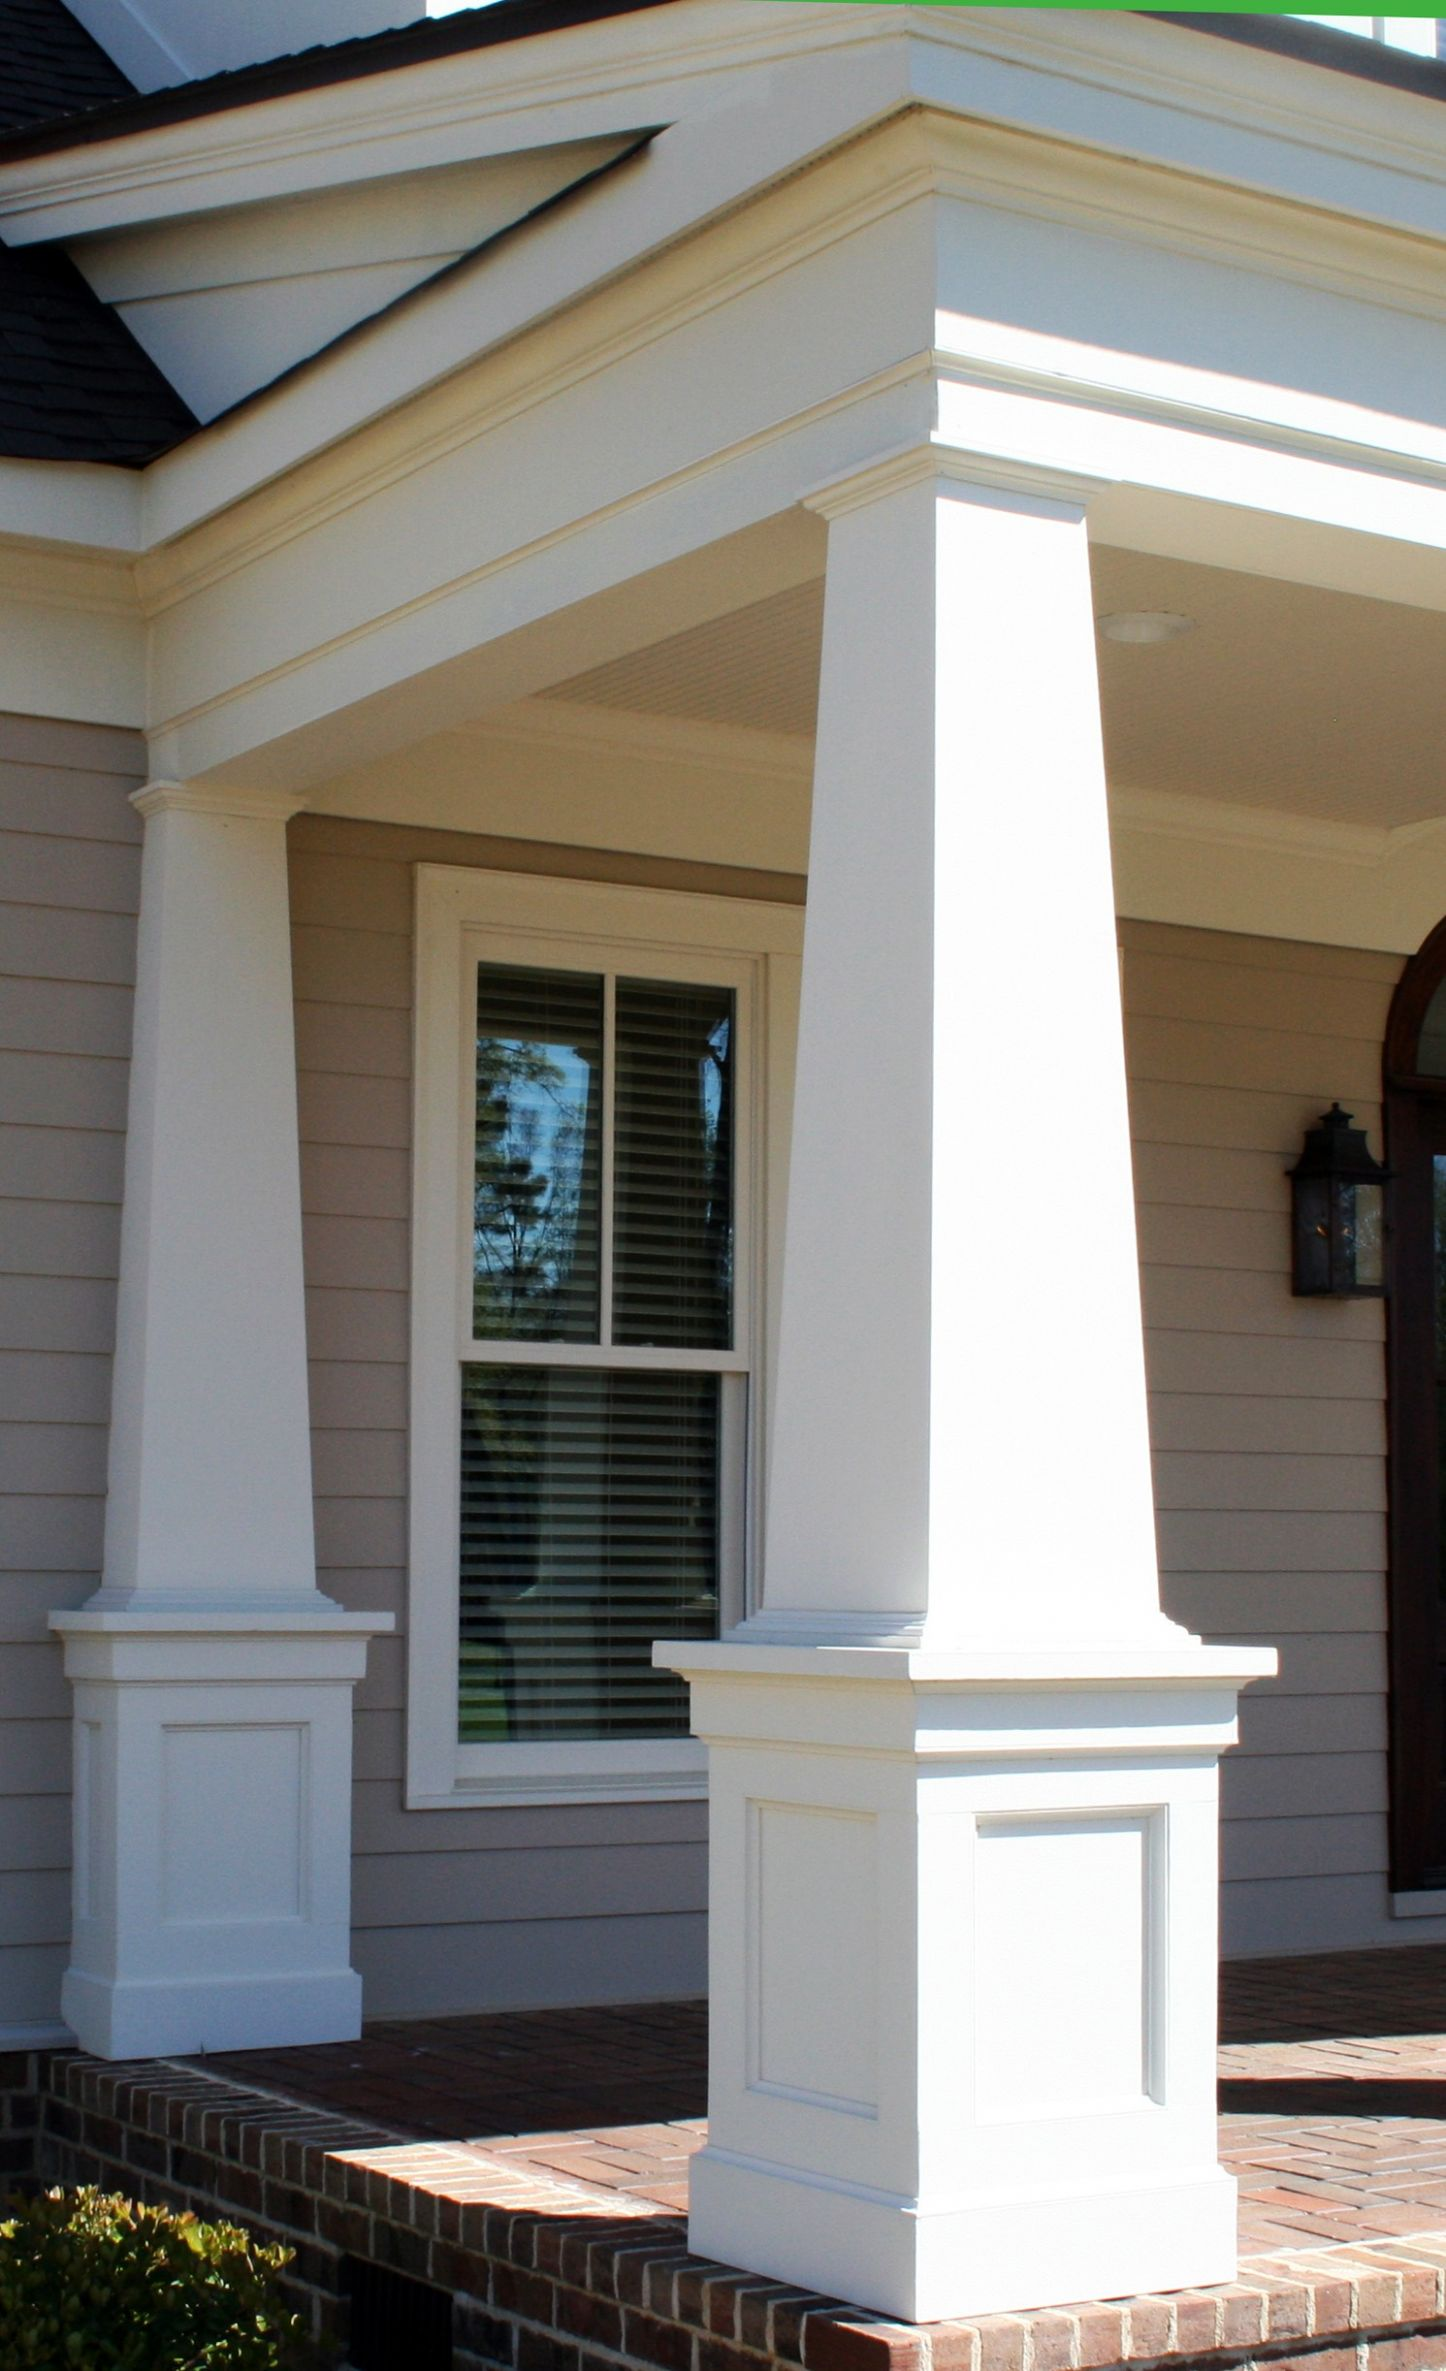 Tapered Front Porch Columns • Porches Ideas - front porch ideas with columns